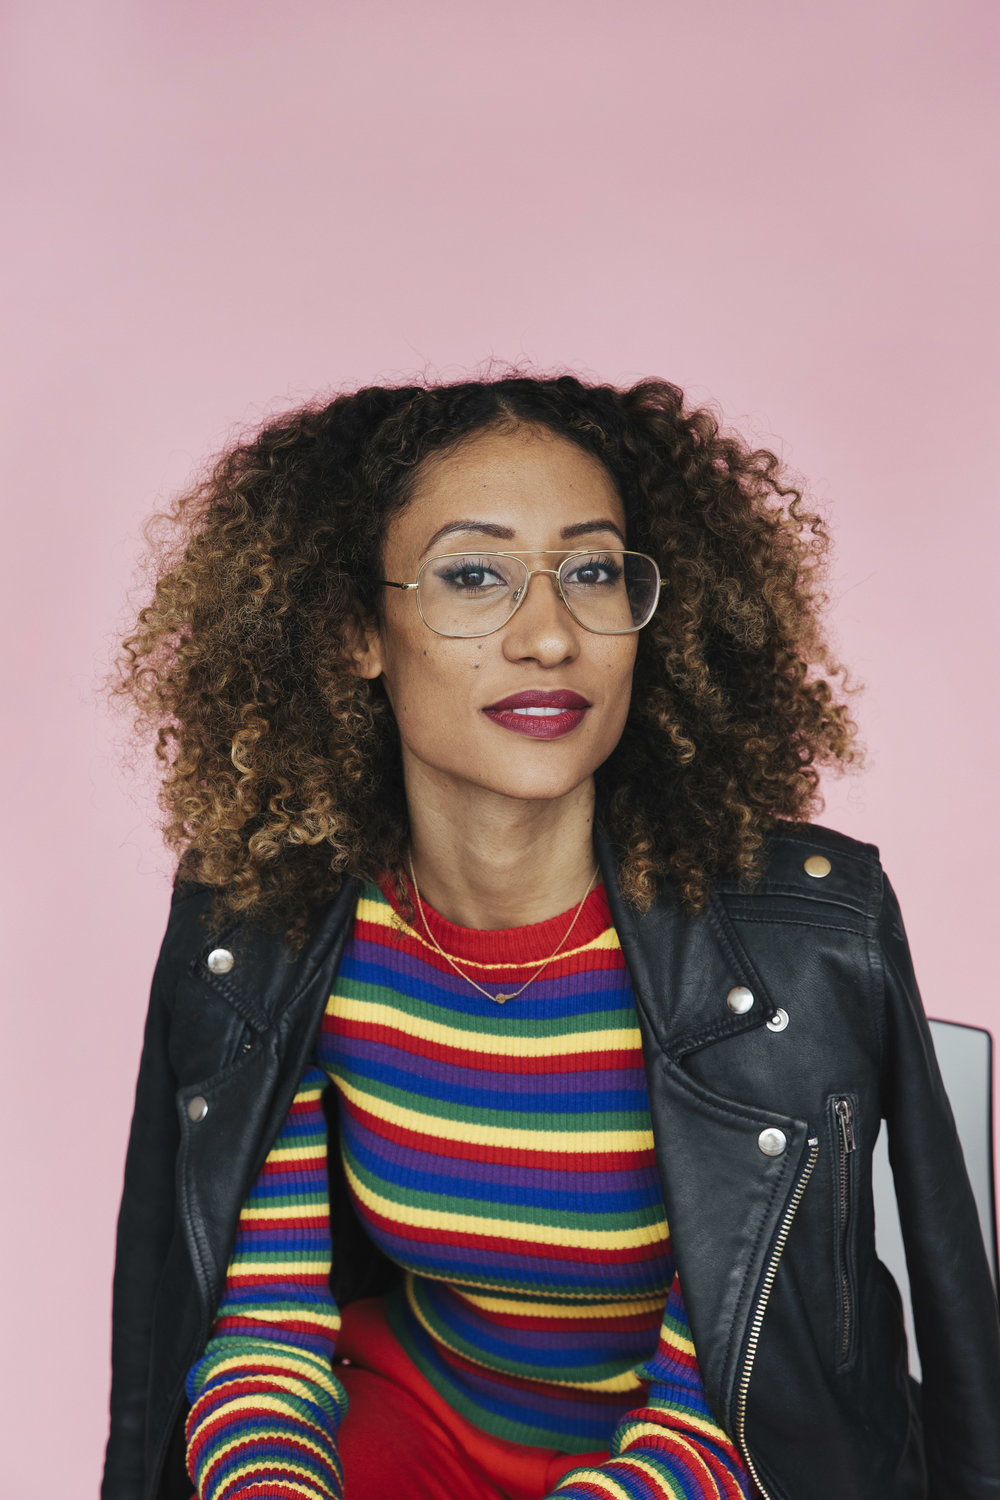 Elaine Welteroth, Editor, Teen Vogue - The Working Woman's Handbook